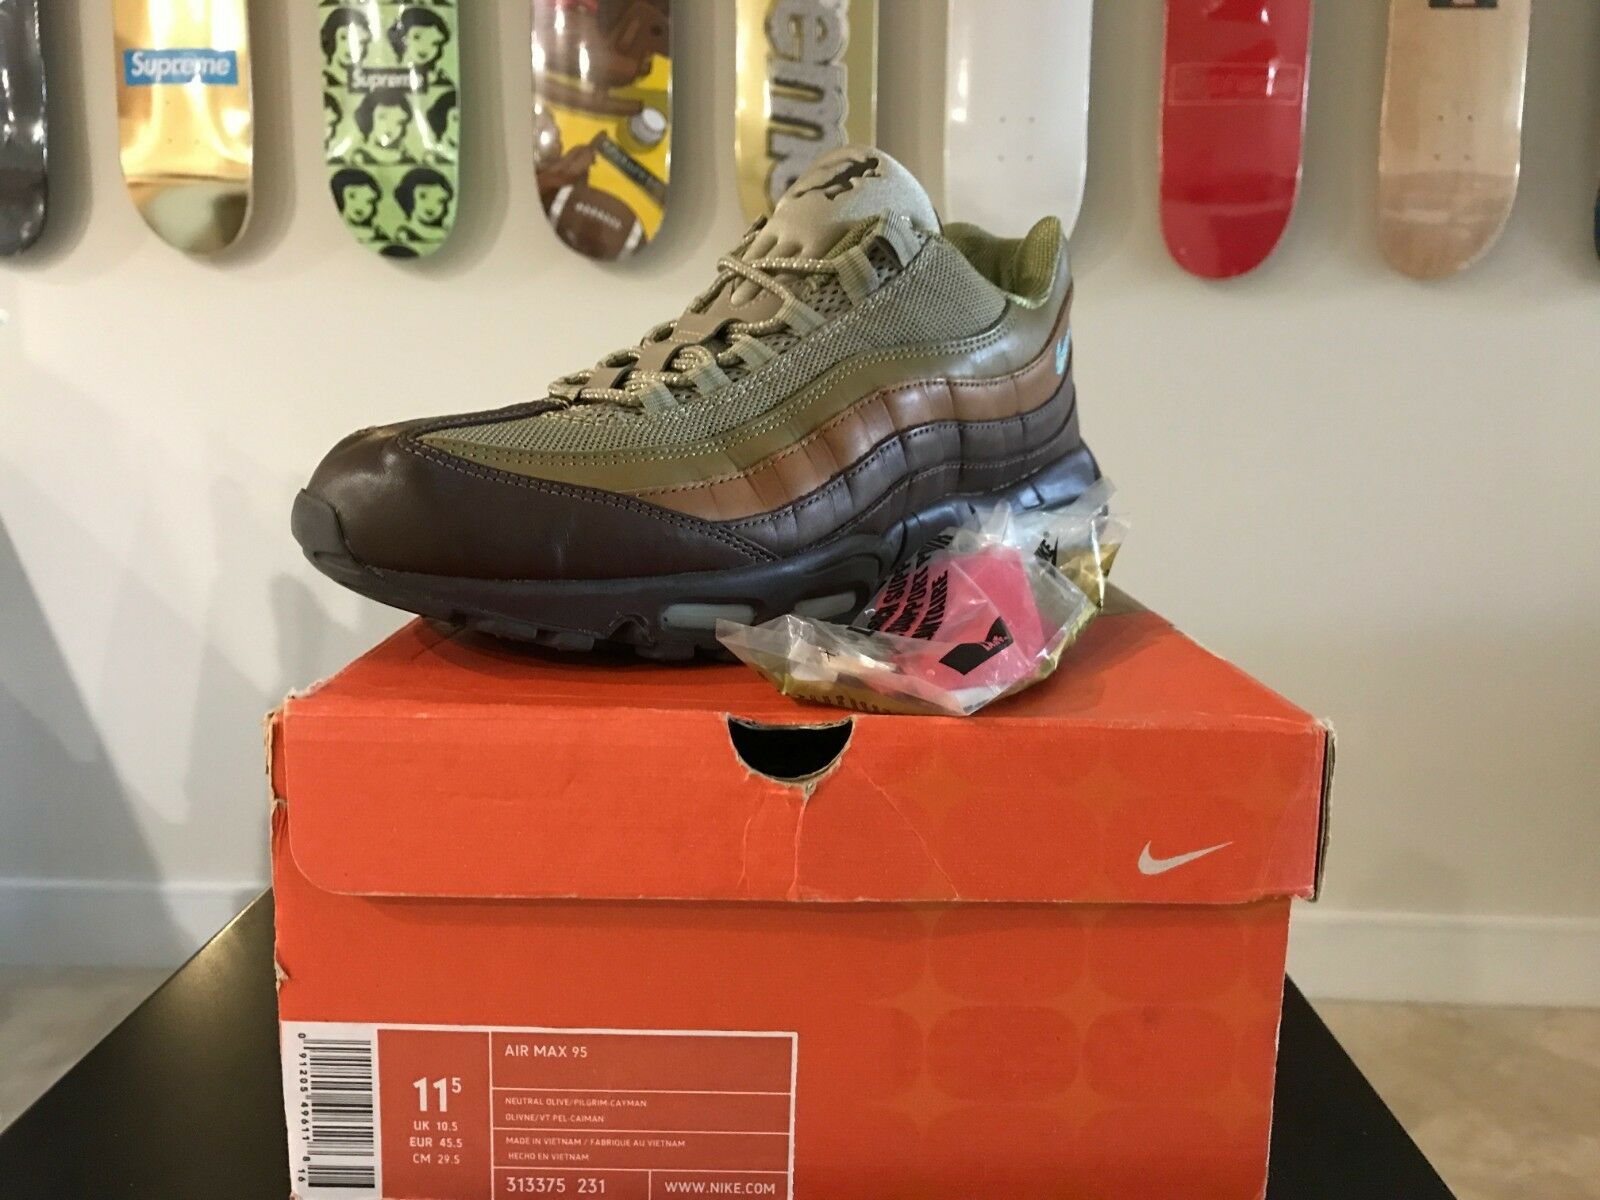 Nike Air Olive Max 95 Evolution Pack Olive Air Pilgrim Cayman Blue Authentic 2005 11.5 20a628